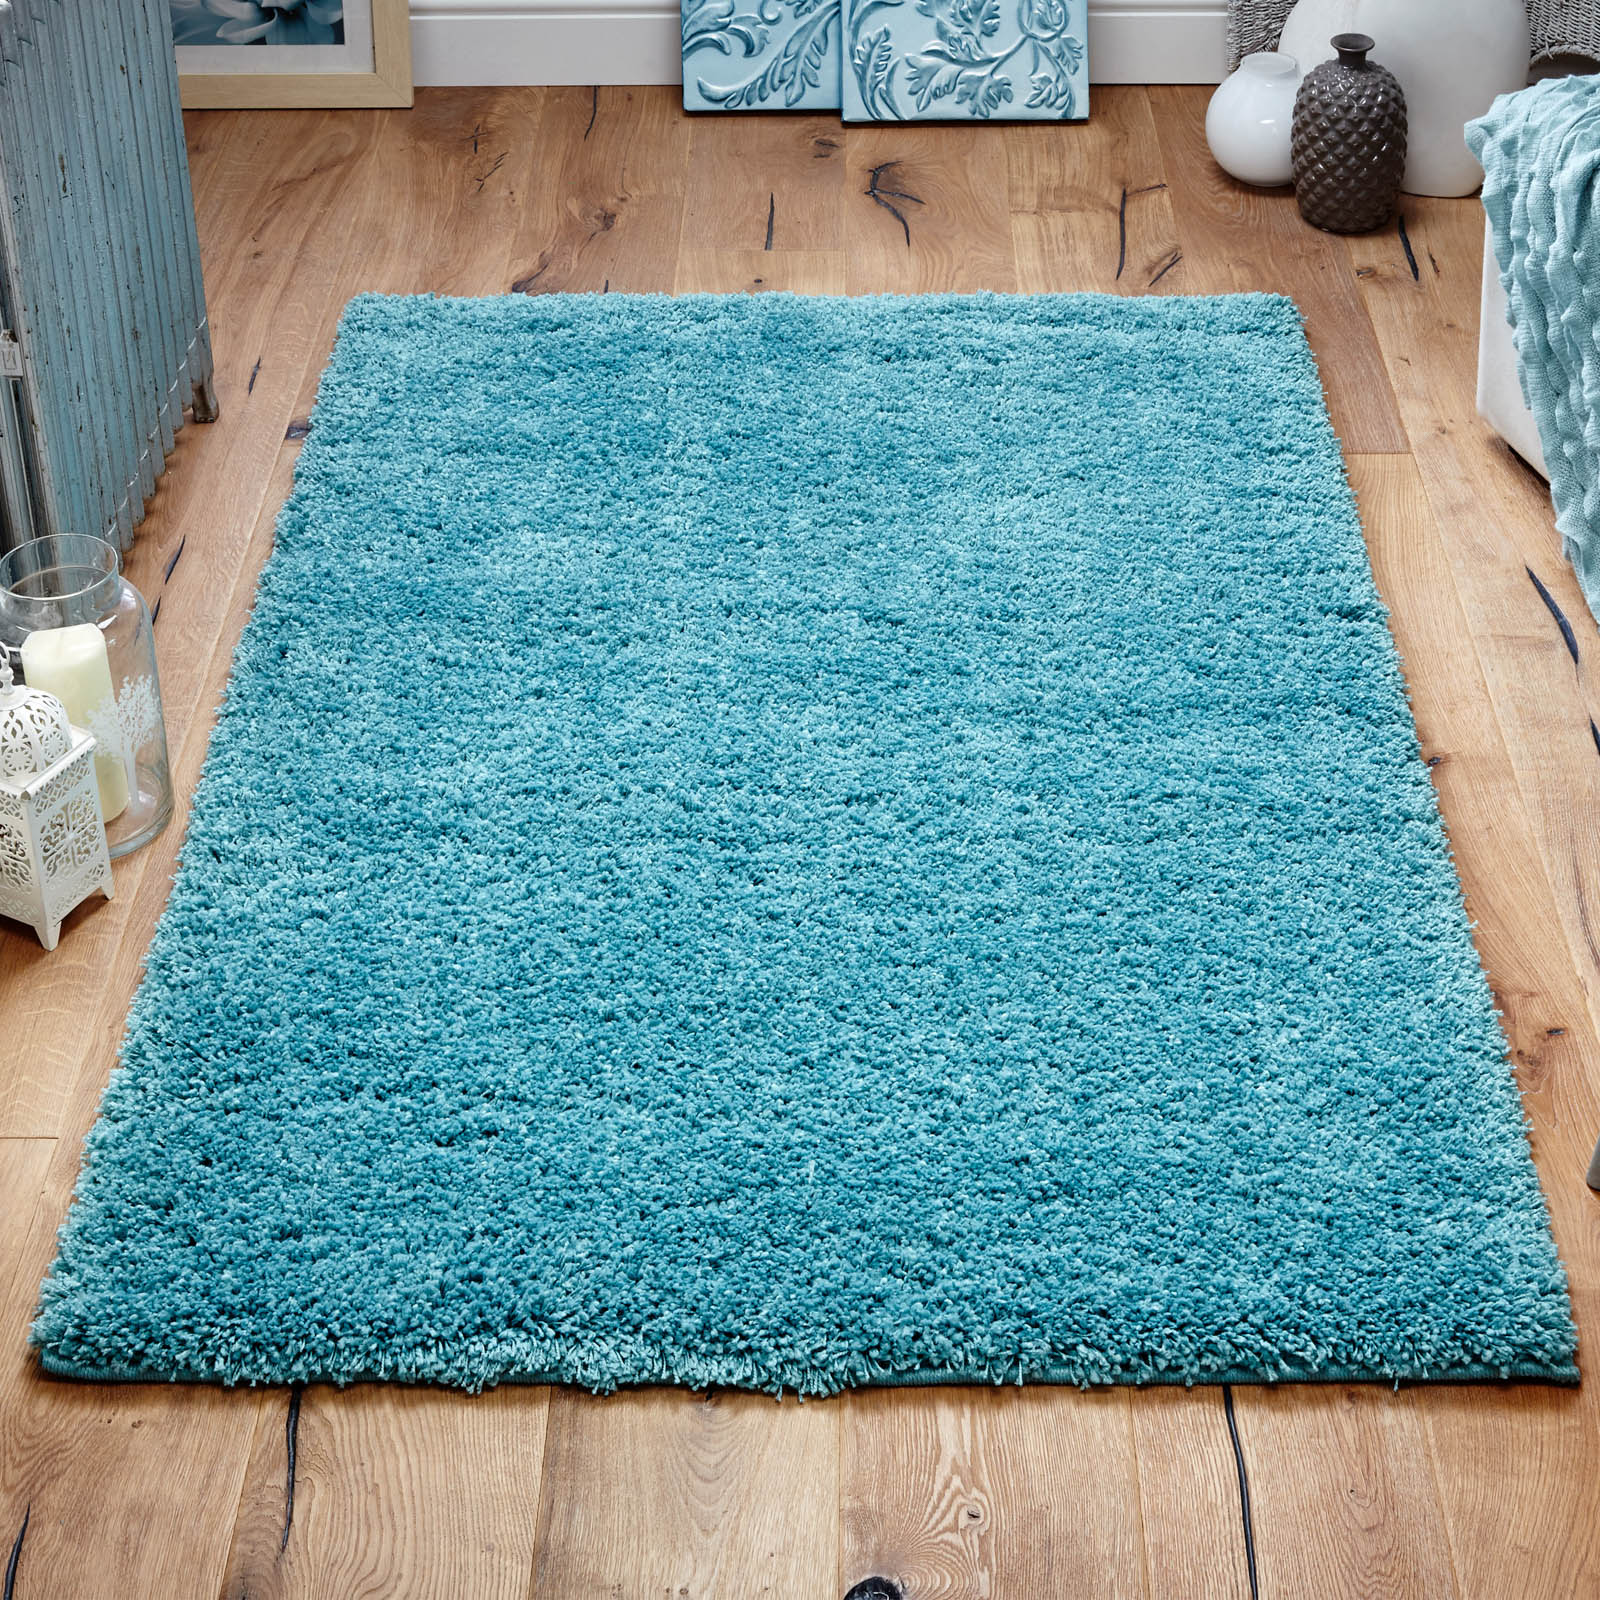 Harmony Shaggy Rugs in Teal